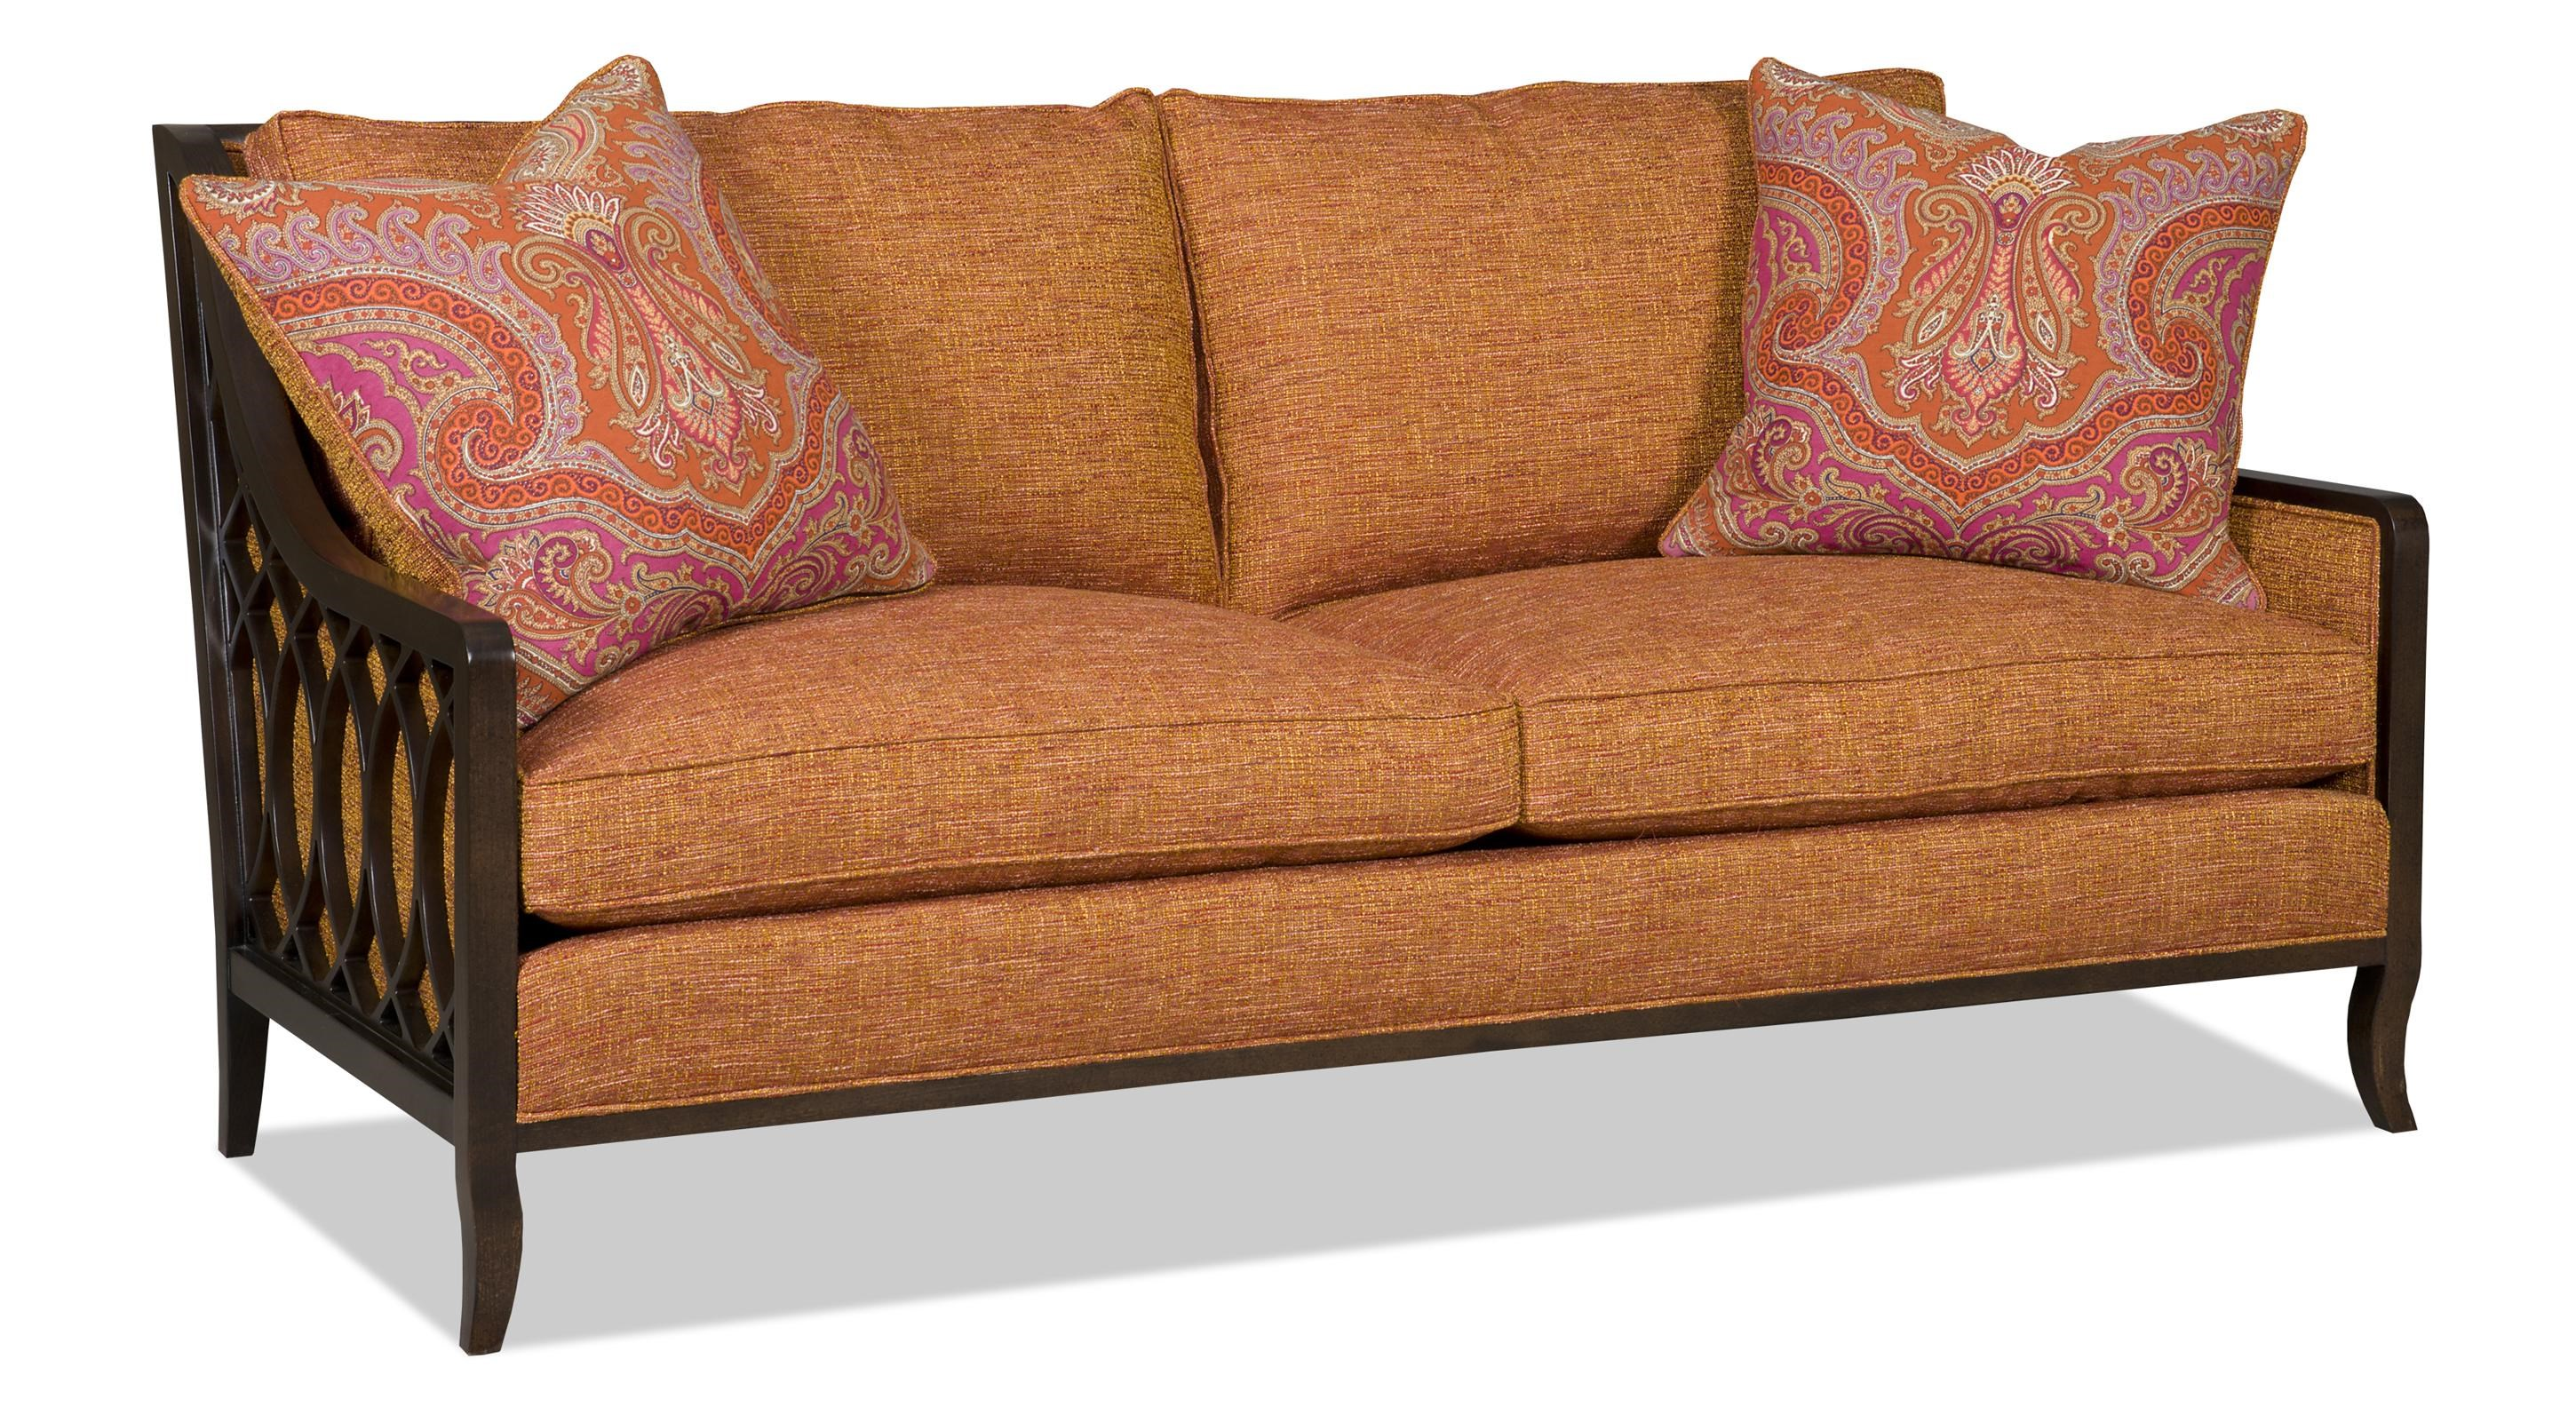 Sam Moore Myla Two Over Two Sofa with Exposed Wood Lattice